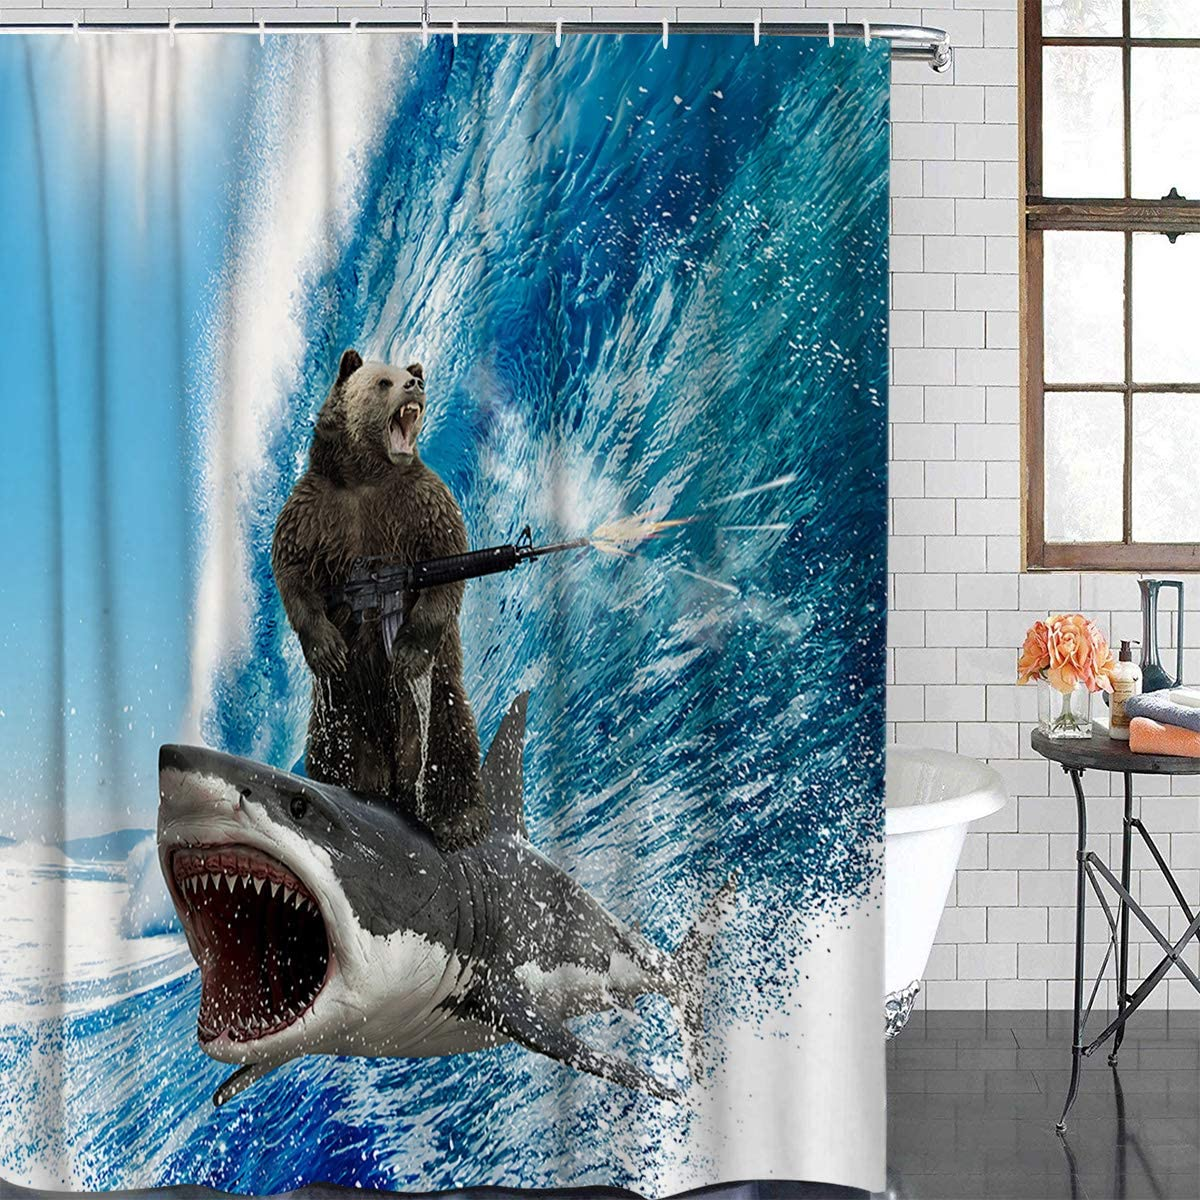 Xspring Shower Curtain Funny Bear with Machine Gun and Shark Surfing Ocean Wave 60 x 72inch Decorative Waterproof Machine Washable Bathroom Curtains, Hooks Included